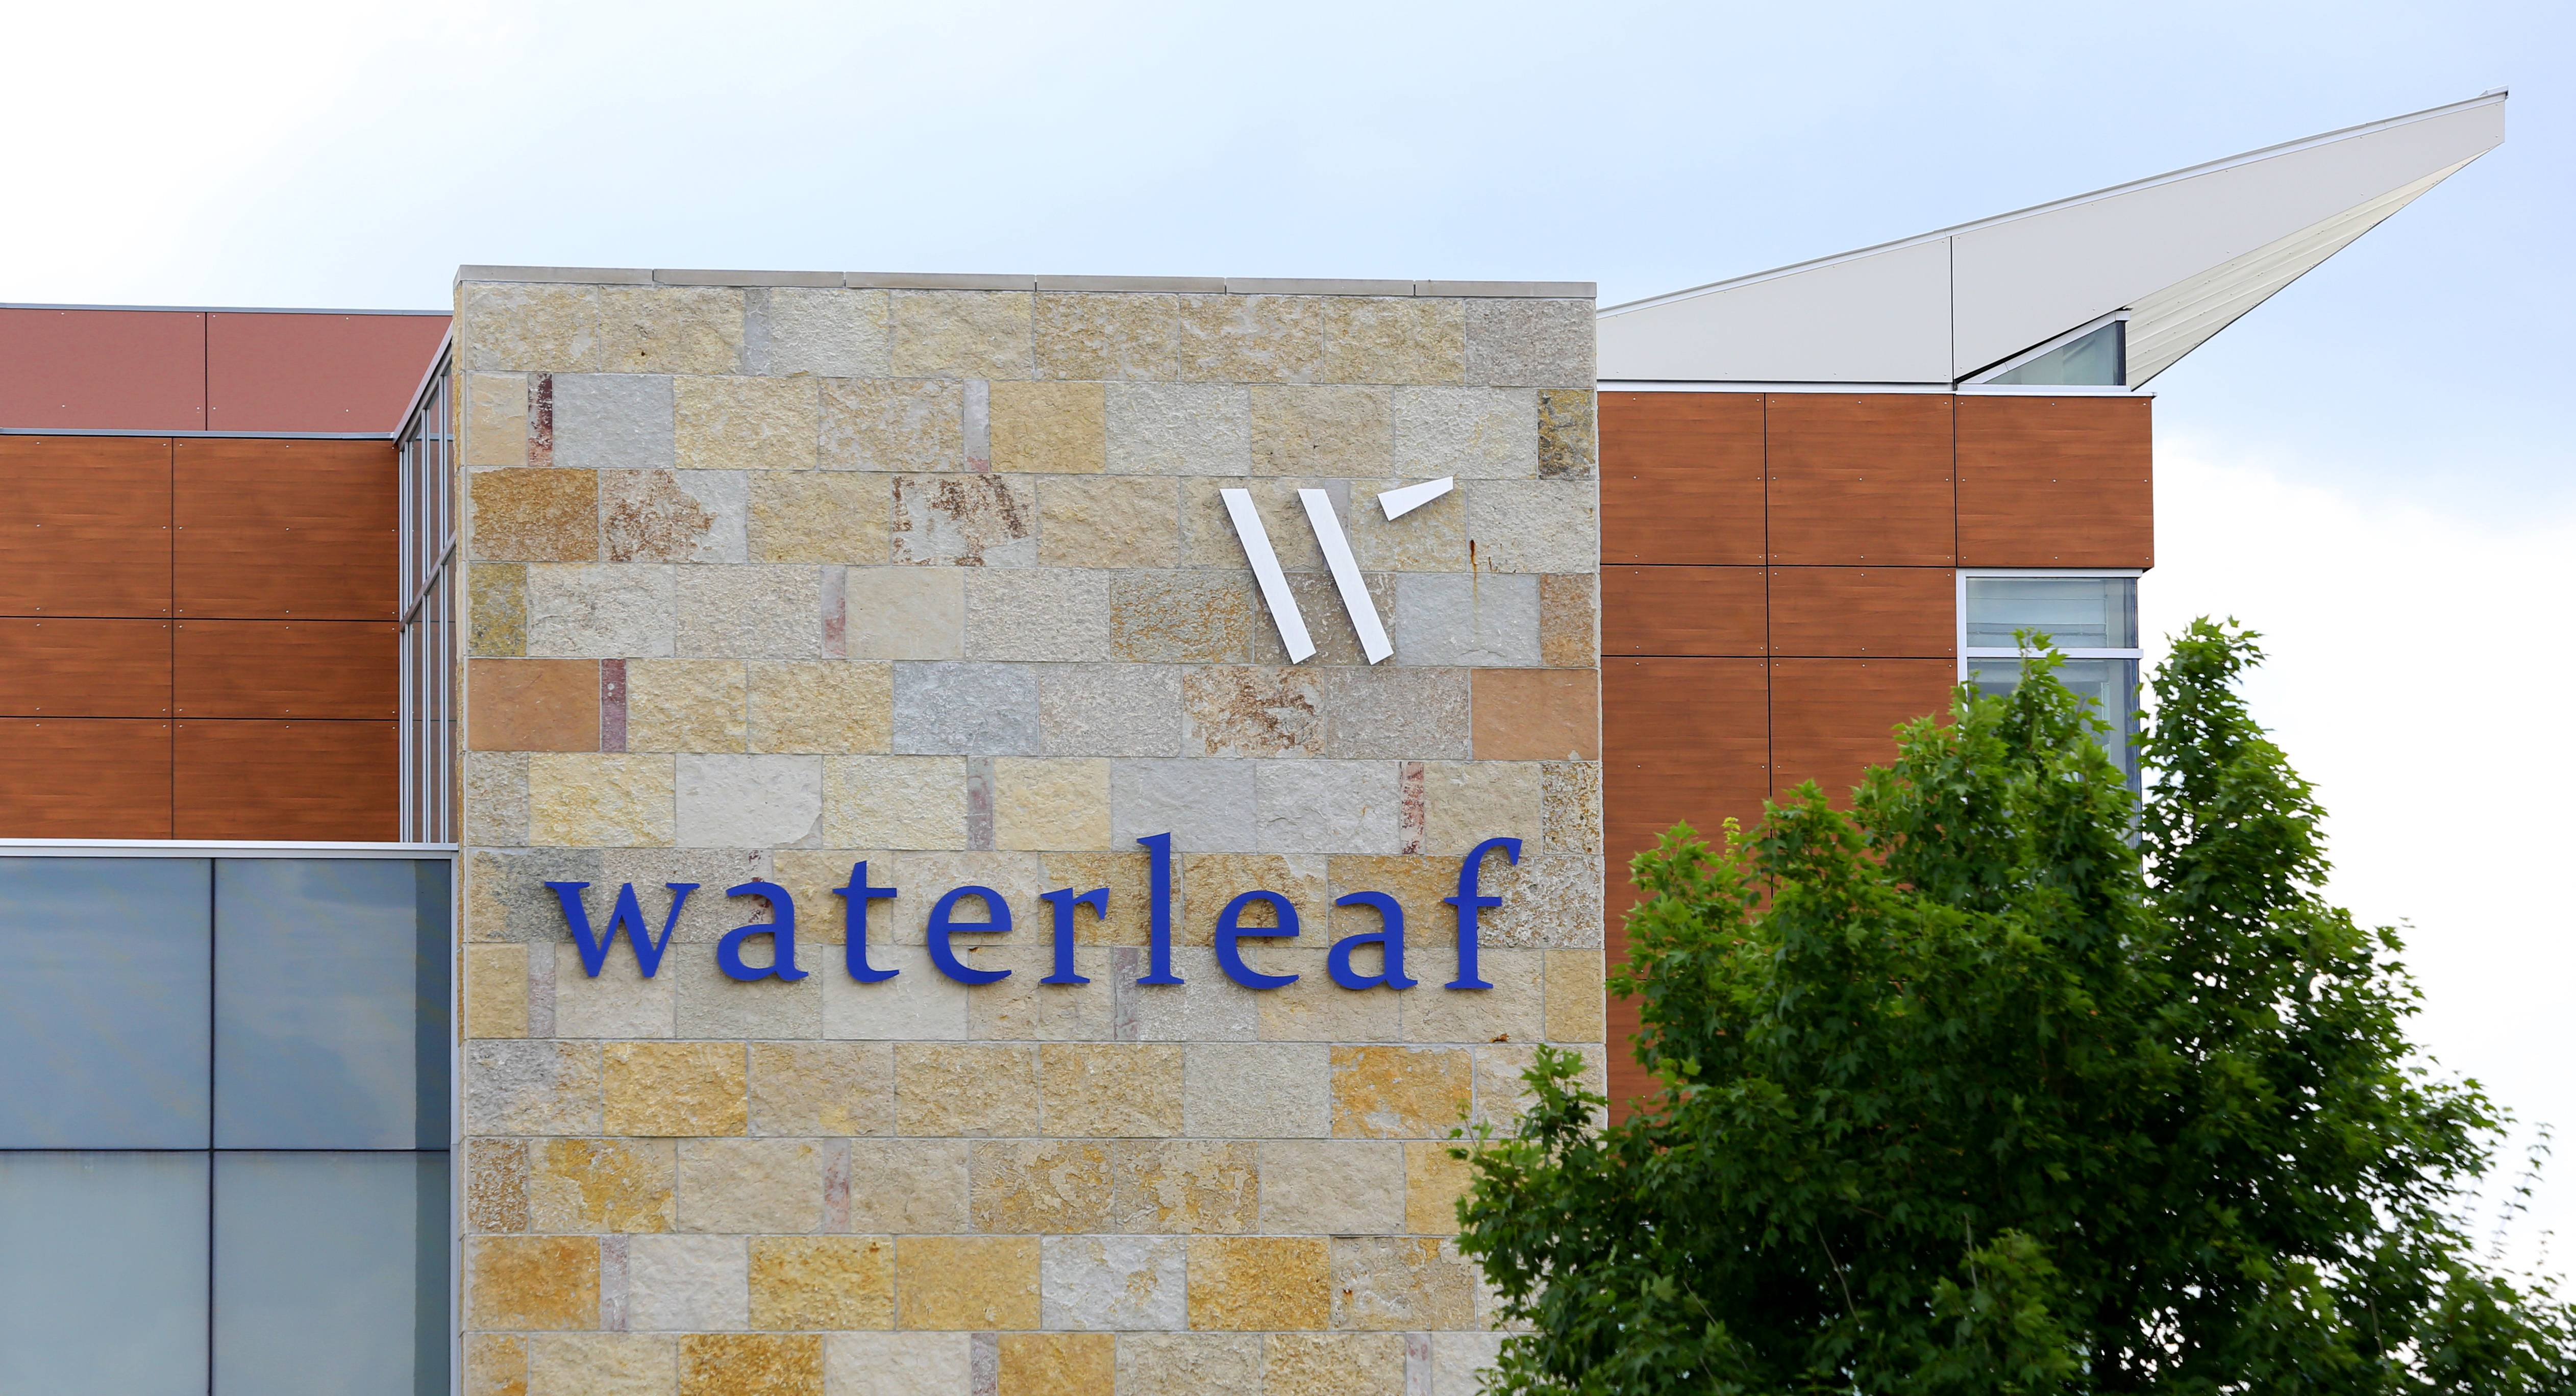 Grand jury subpoenas COD records on Waterleaf spending